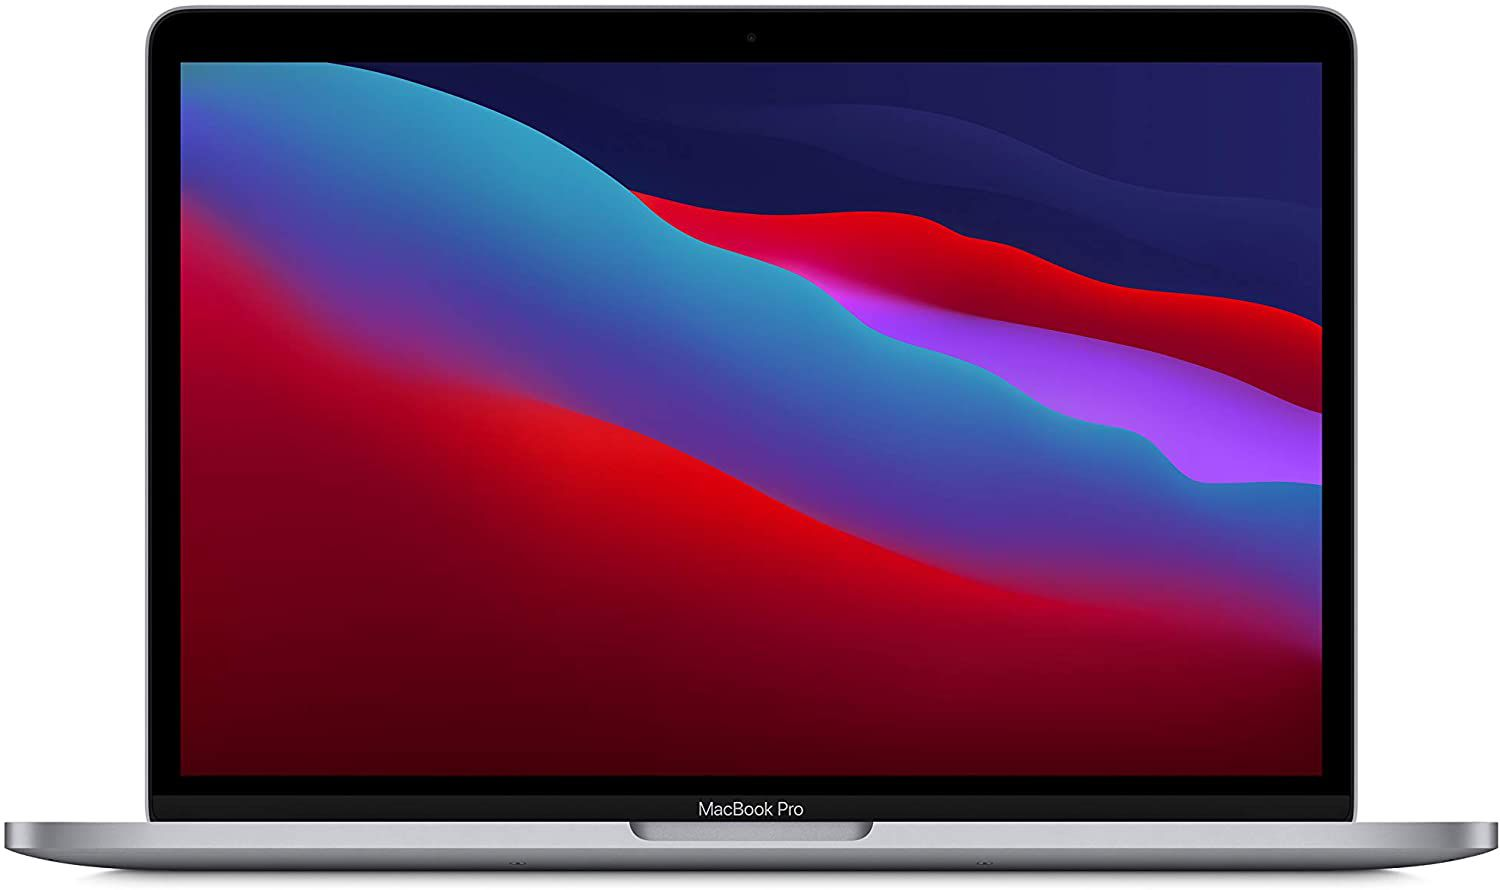 Apple introduced the Macbook Pro with M1 chip in 2020.